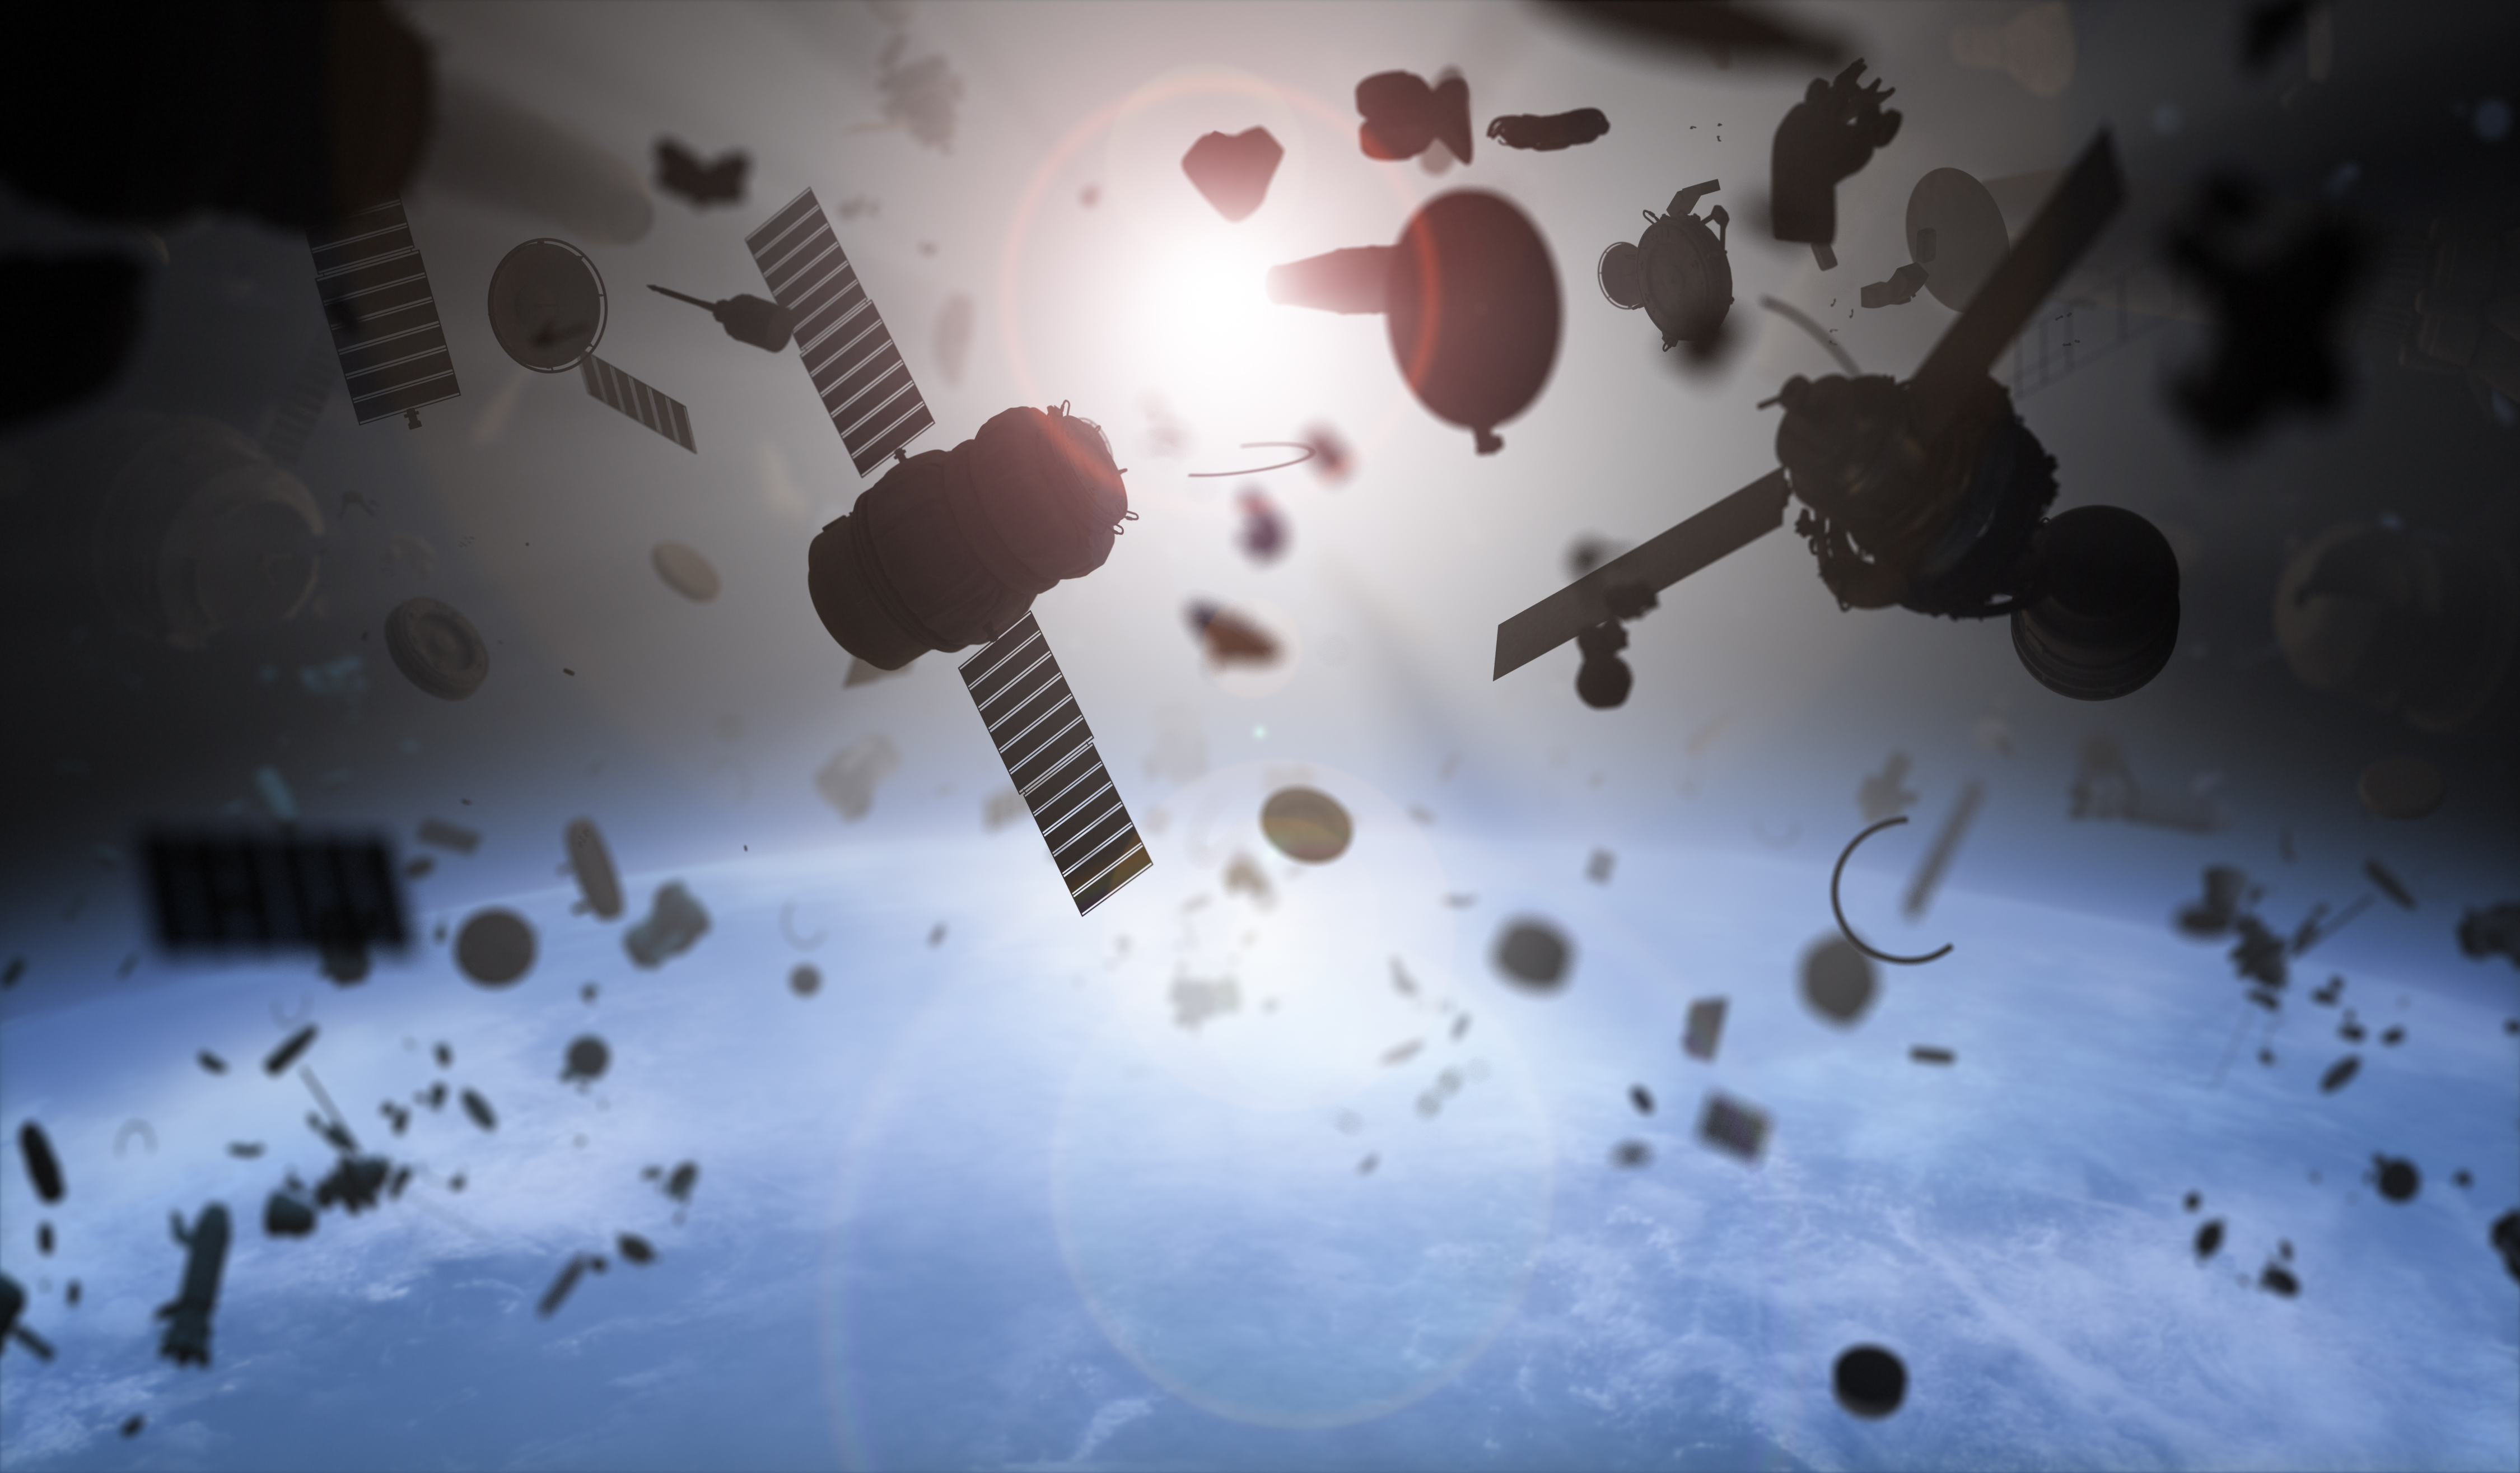 We're entombing the Earth in an impenetrable shell of dead satellites